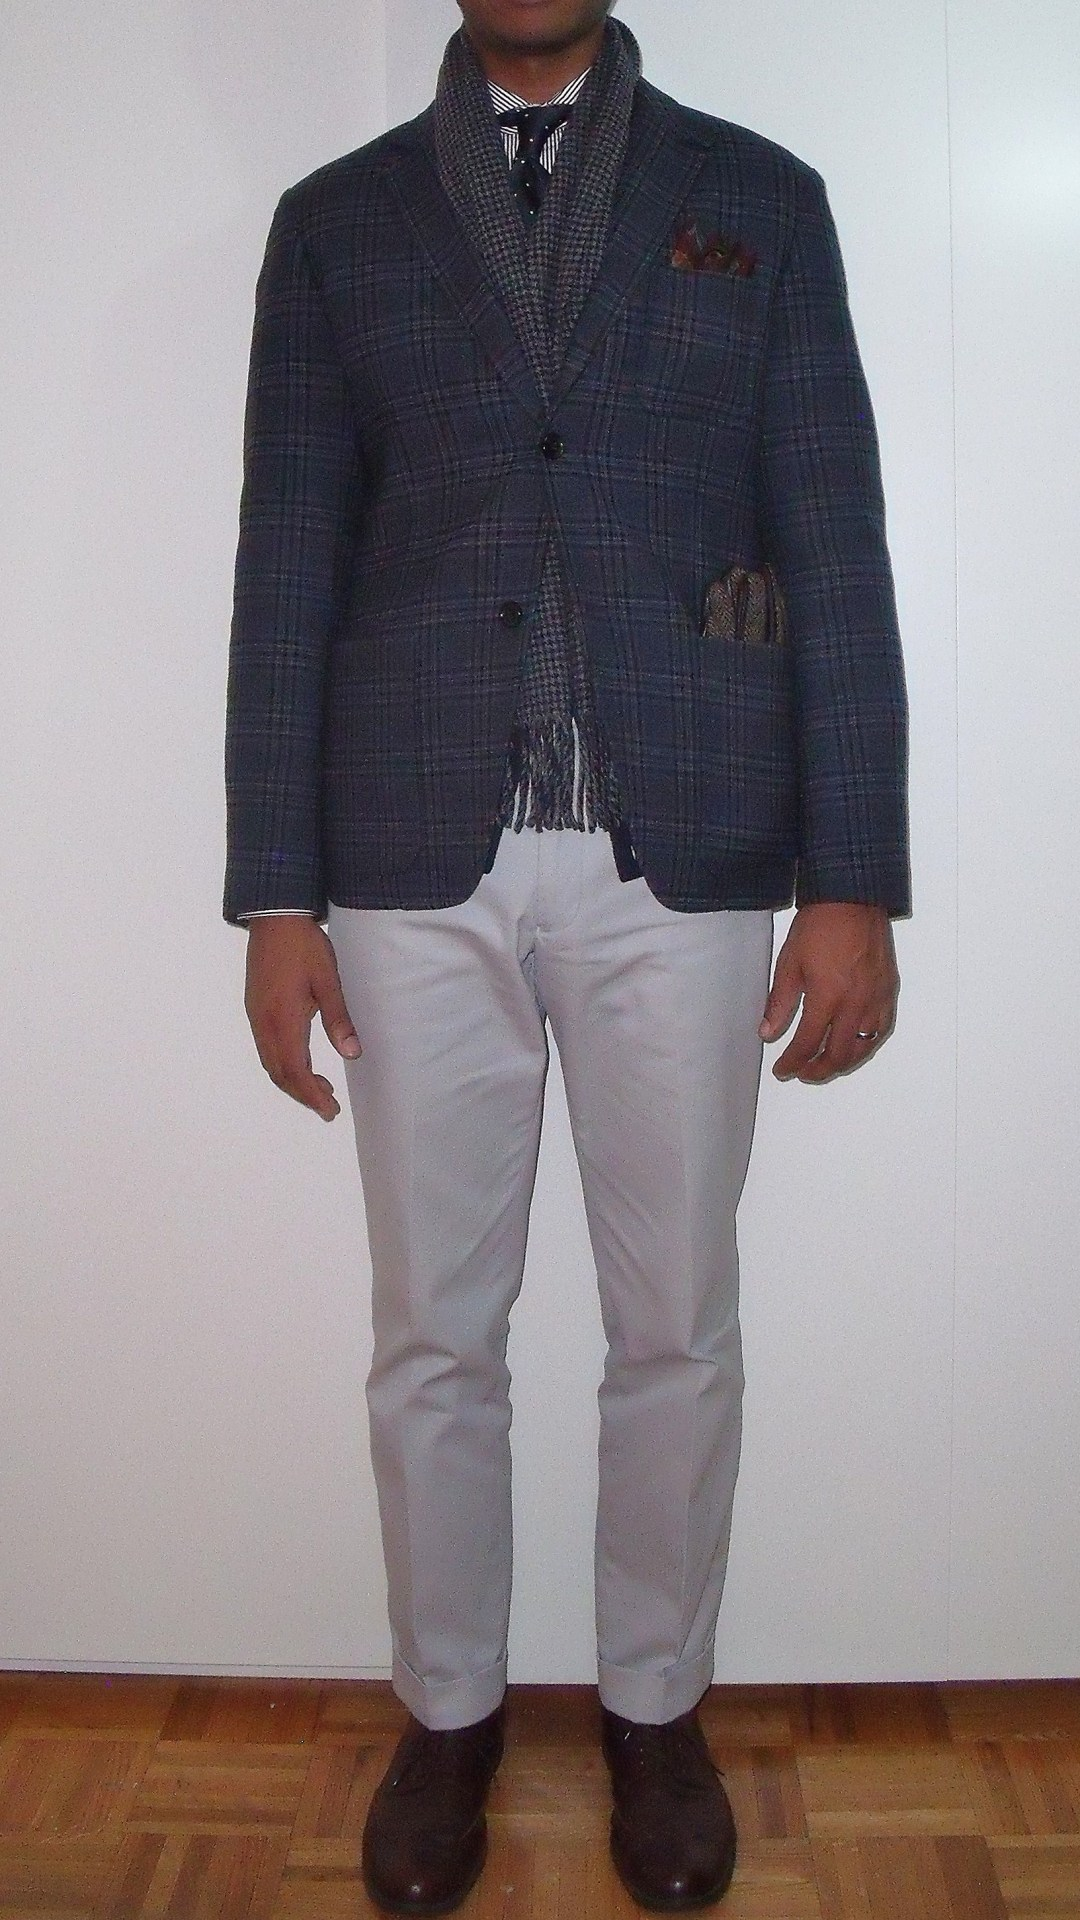 acutestyle:  WIWT: 12.18.12 Acute Style Wears All the Patterns to MT^2 Black Watch hat.  Houndstooth scarf.  Plaid Jacket.  Paisley pocket square.  Polka dot tie.  Bengal stripe shirt.  Household division watch strap.  Regimental stripe socks.  Herringbone gloves.  I attended a conference tonight called Mathematics Teachers on Teaching.  I'm super inspired.  There is always so much more to do and learn.